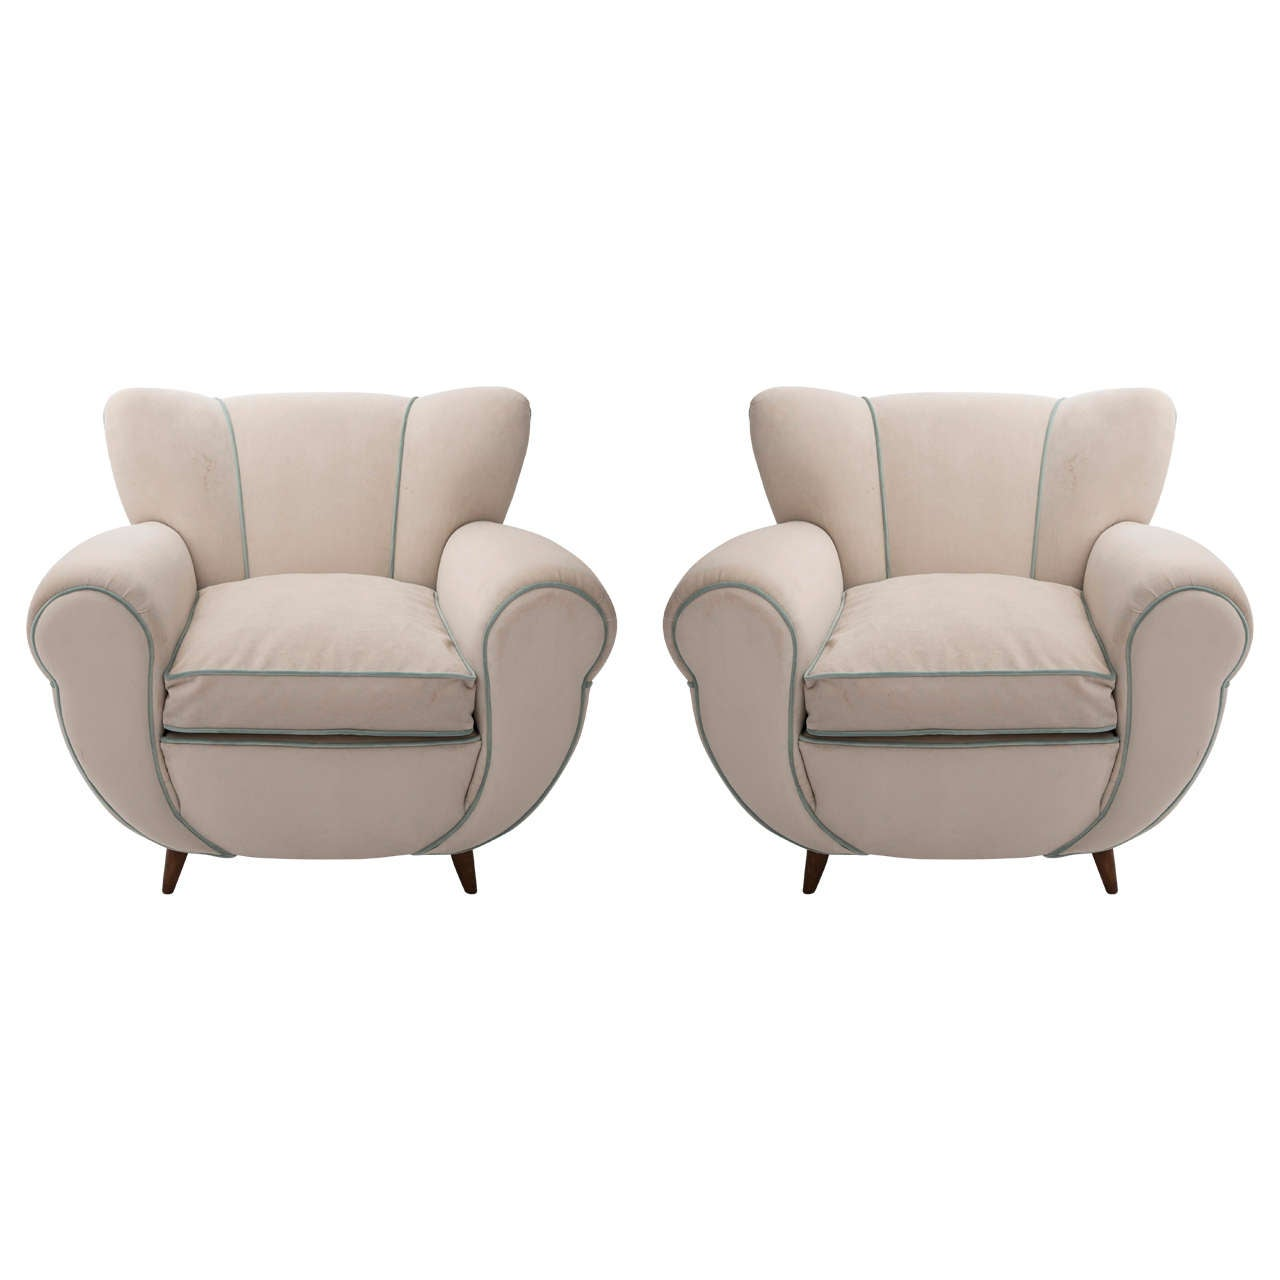 Guglielmo Ulrich attributed pair of armchairs, Italy circa 1940